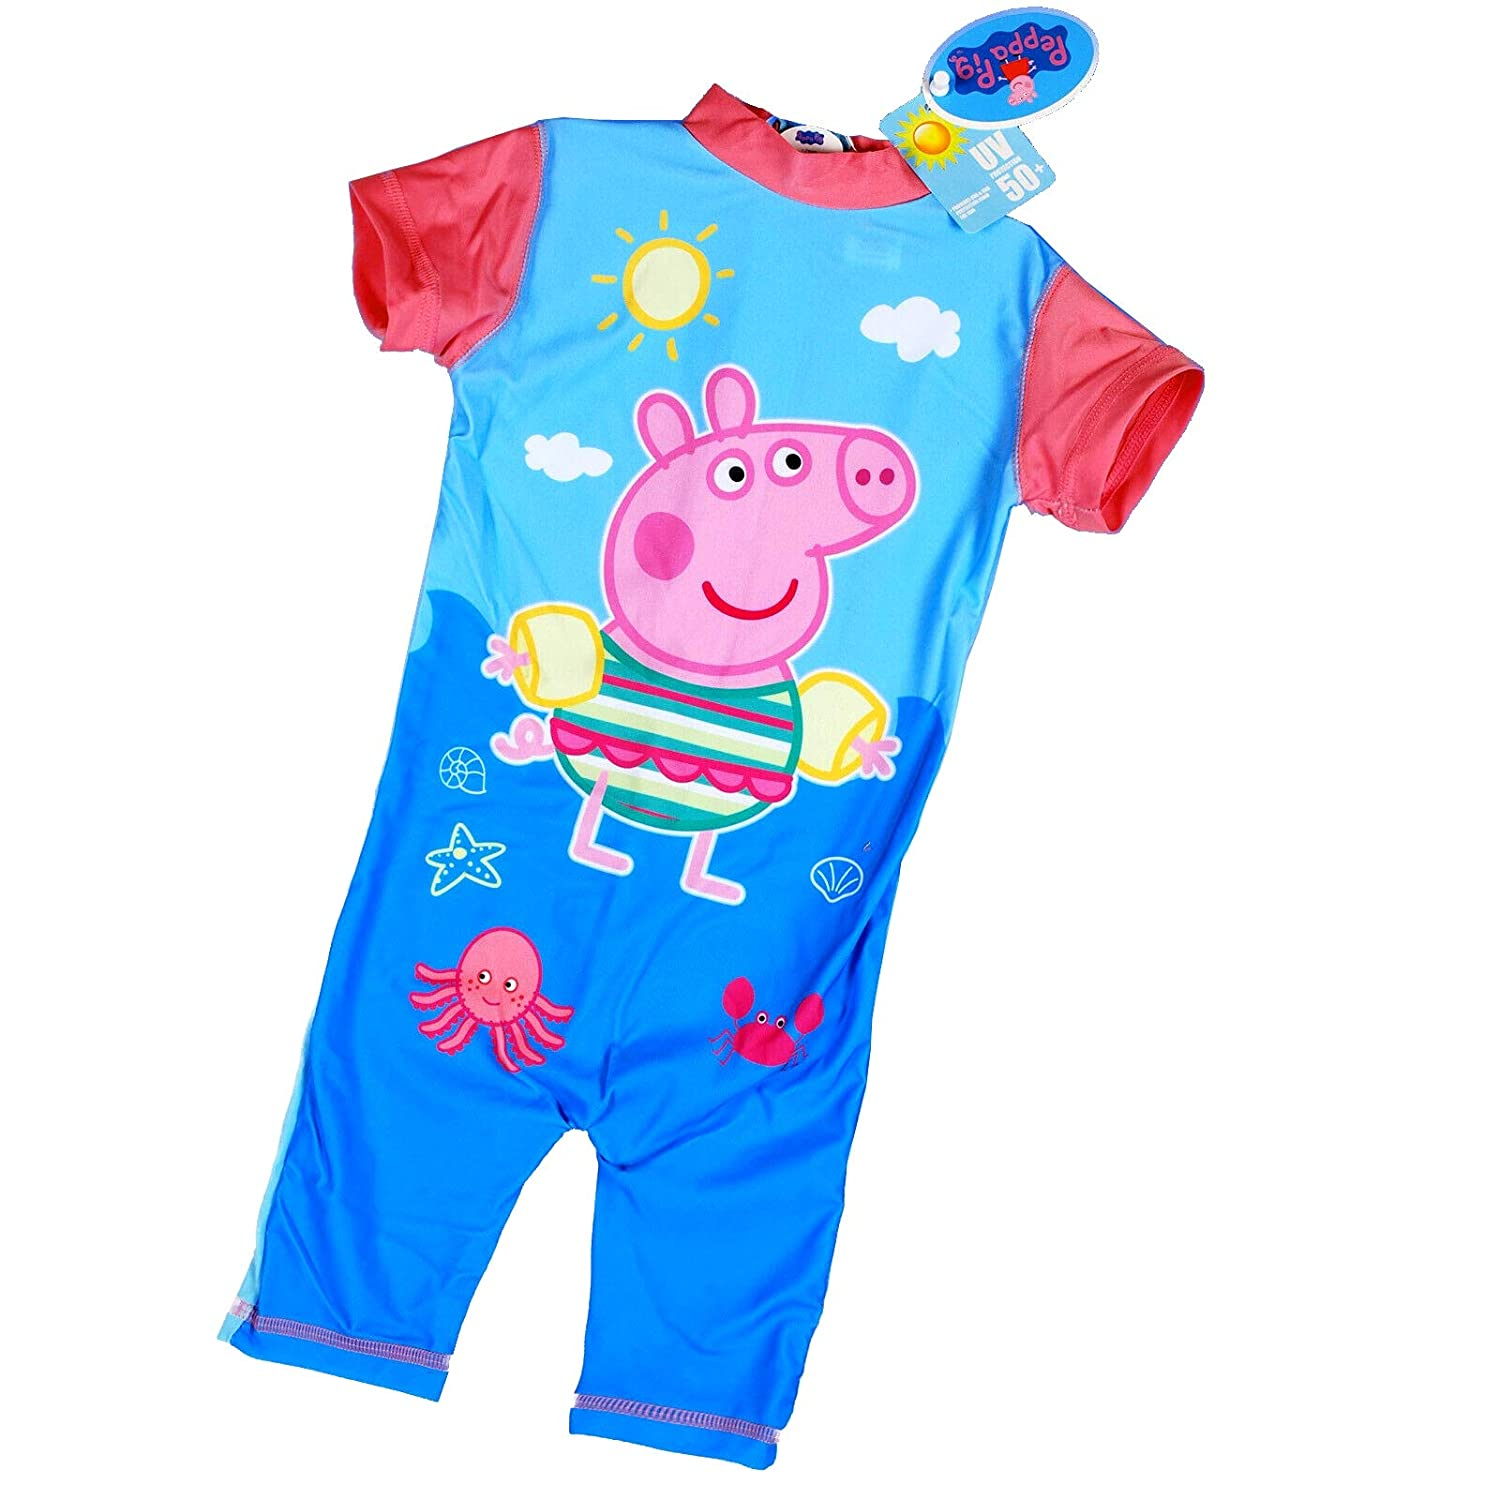 Peppa Pig UV 50 One Piece Swimming Costume for Kids Sun Protection Swimsuit for Boys and Girls